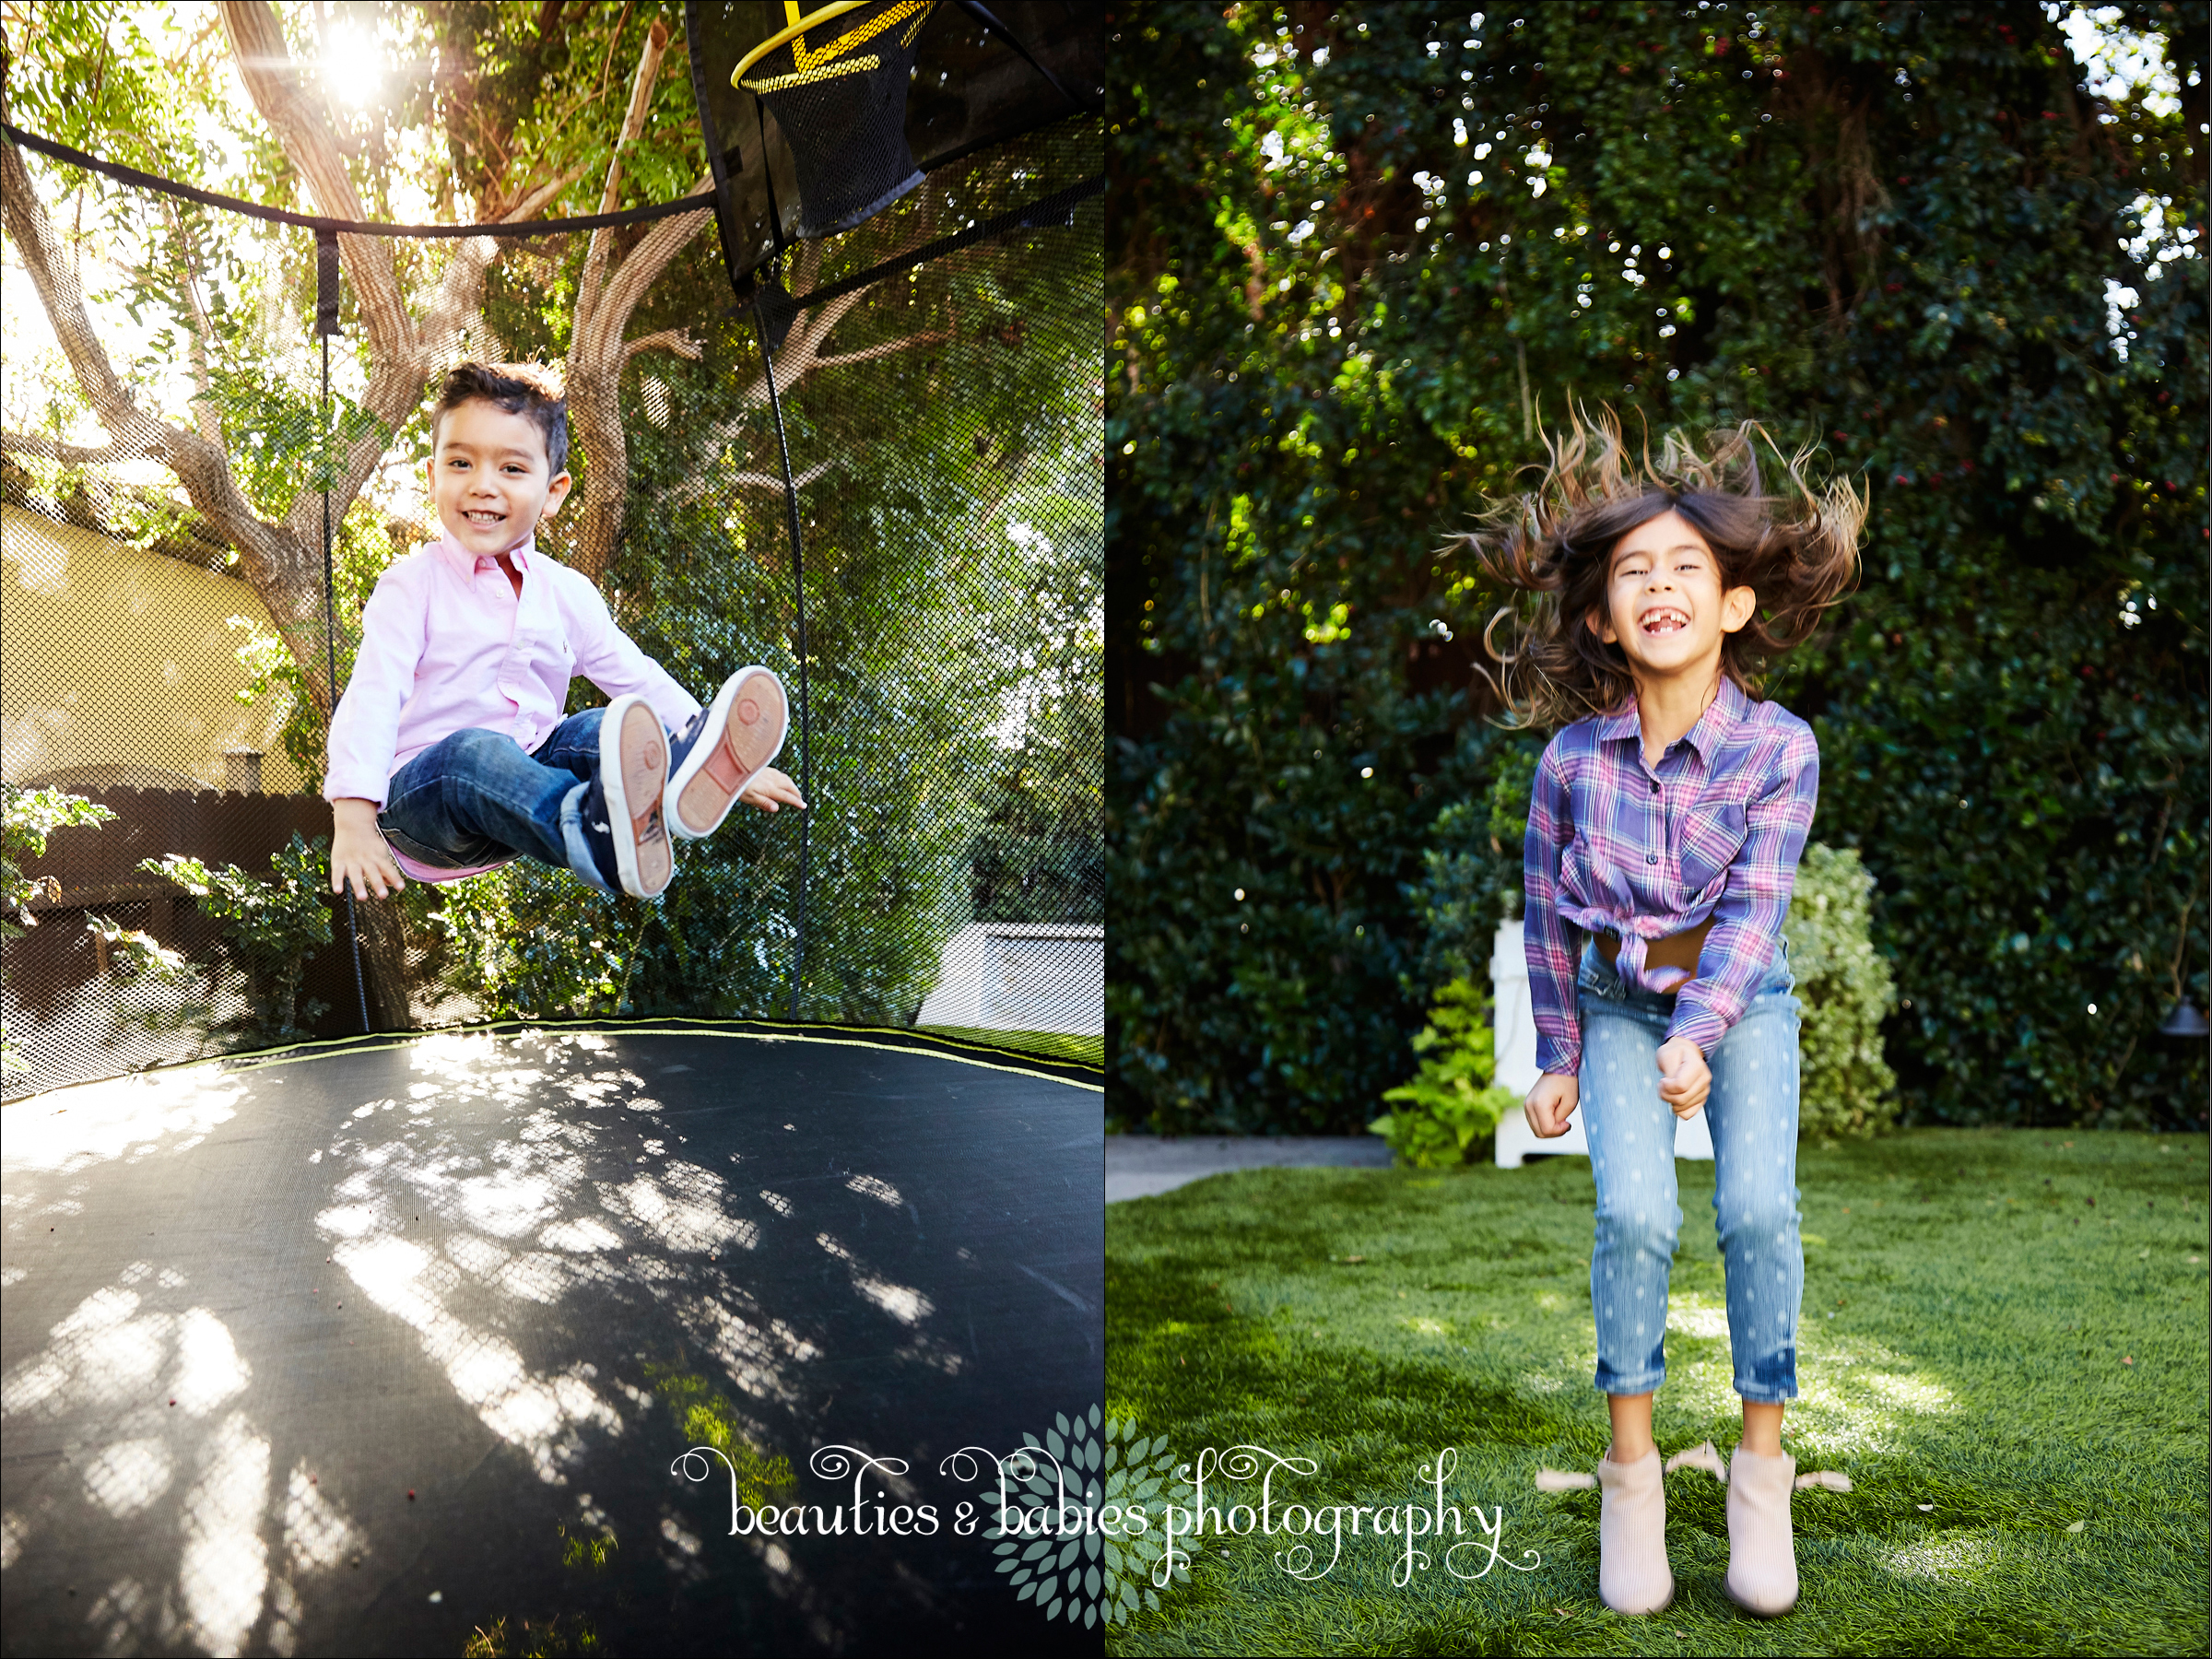 Los Angeles childrens photography, kids photographer los angeles, Family photographer Los Angeles, best Los Angeles family photographer, at-home family photography Los Angeles